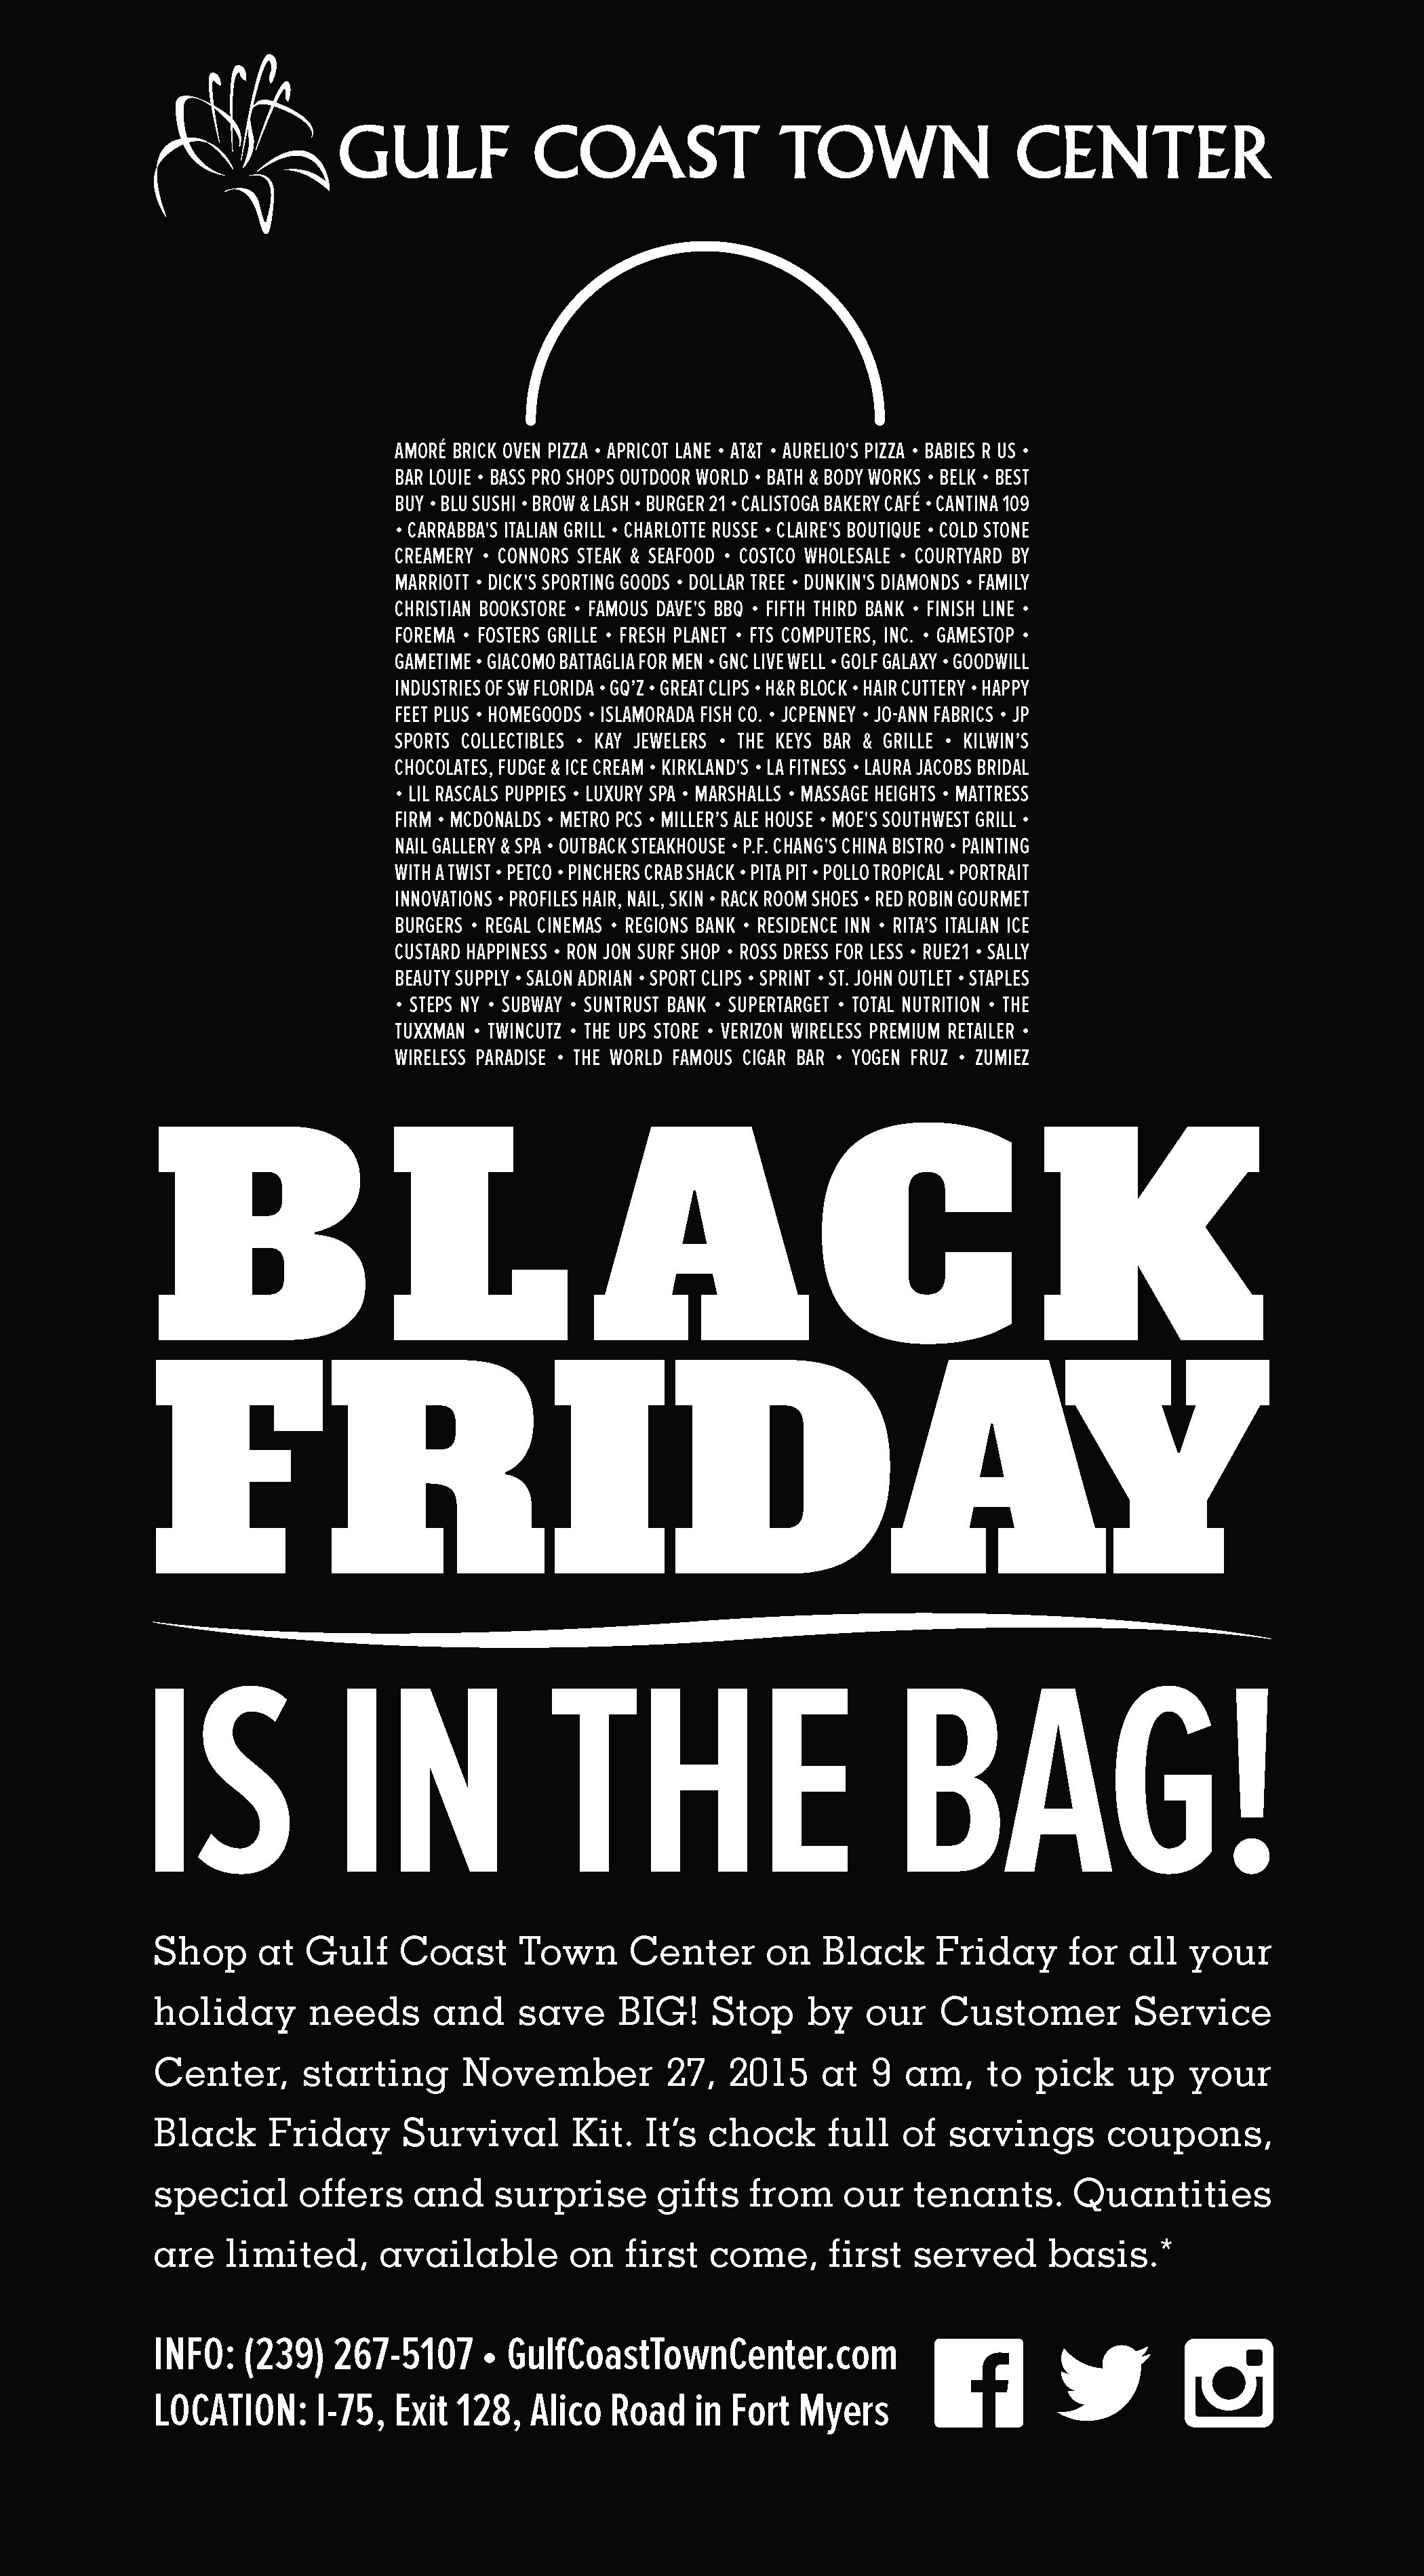 Black Friday Promotion Advertising